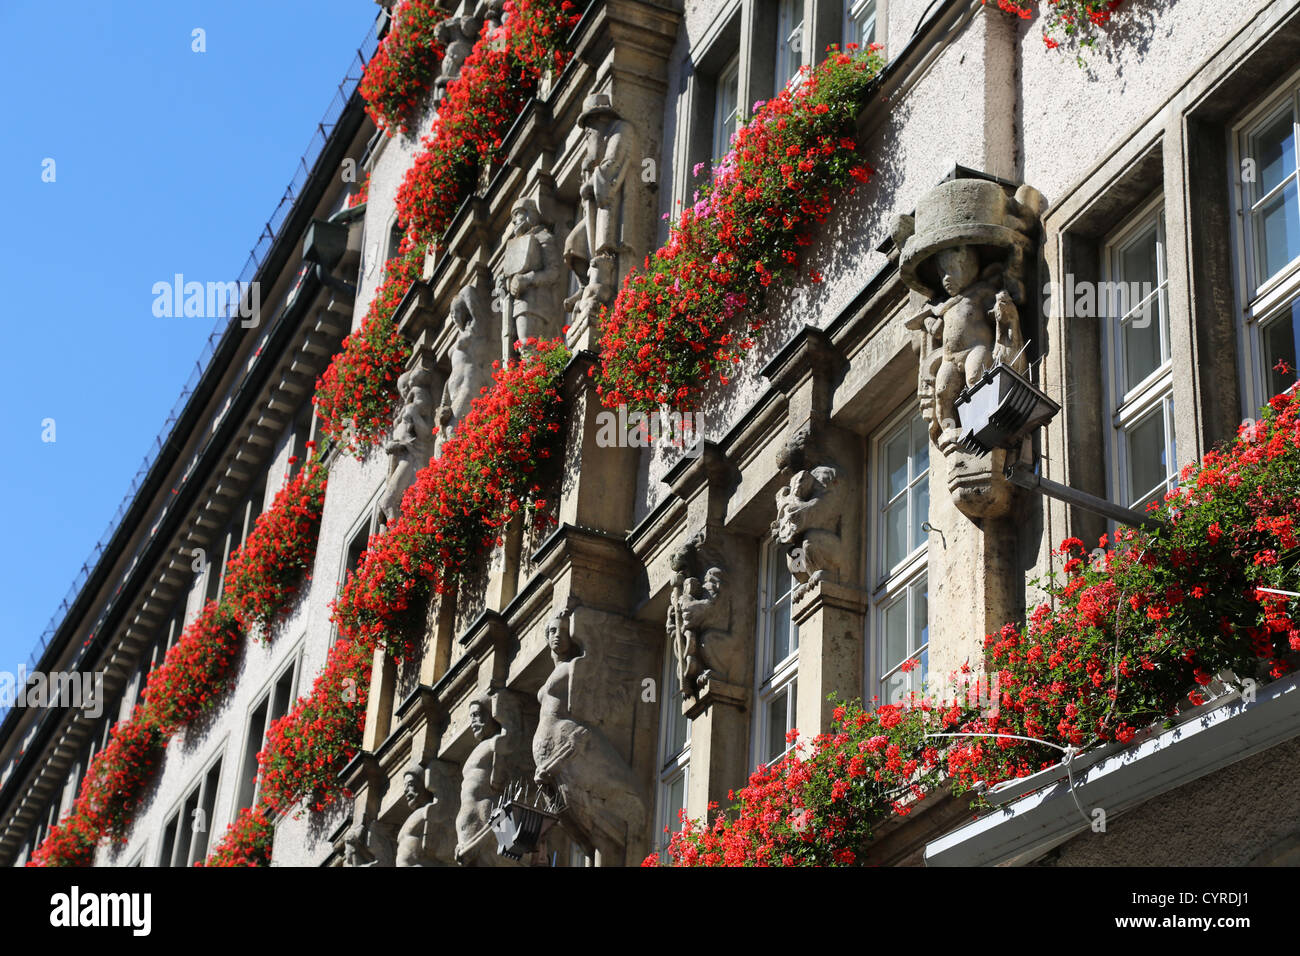 Geranium flowers on buildings in Munich, Germany Stock Photo